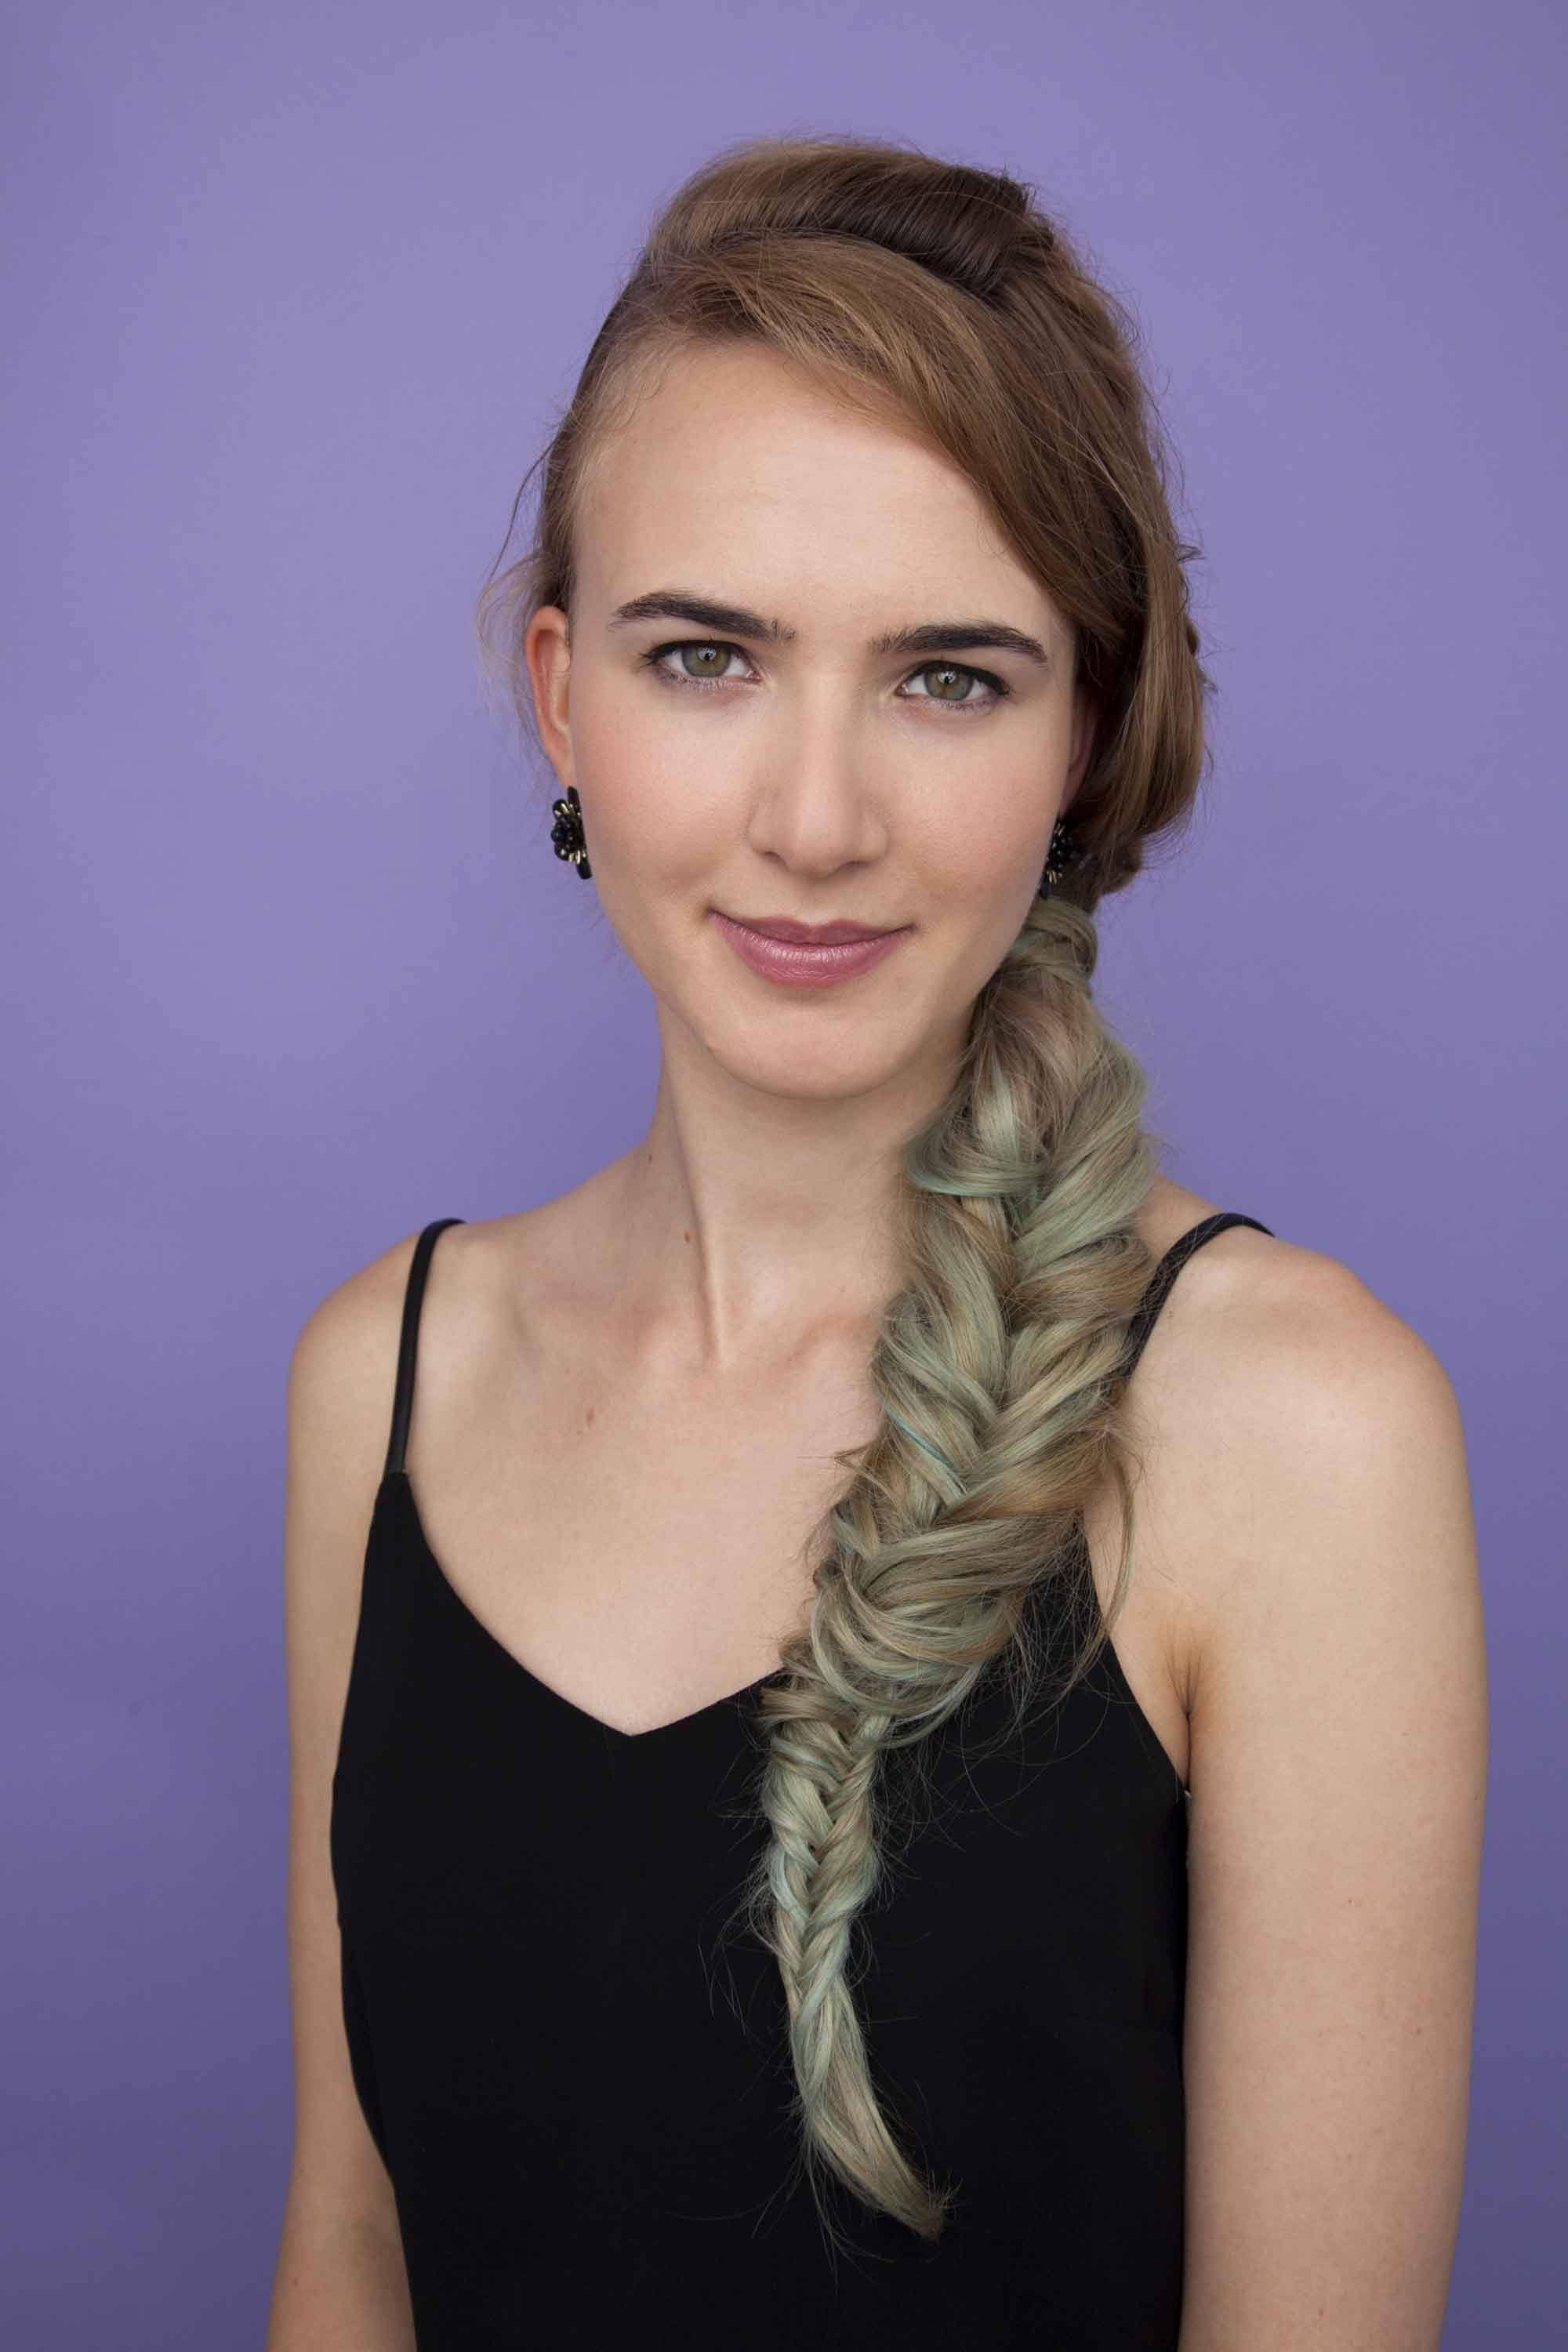 model with blue tinted blonde hair and a large fishtail plait against a purple background